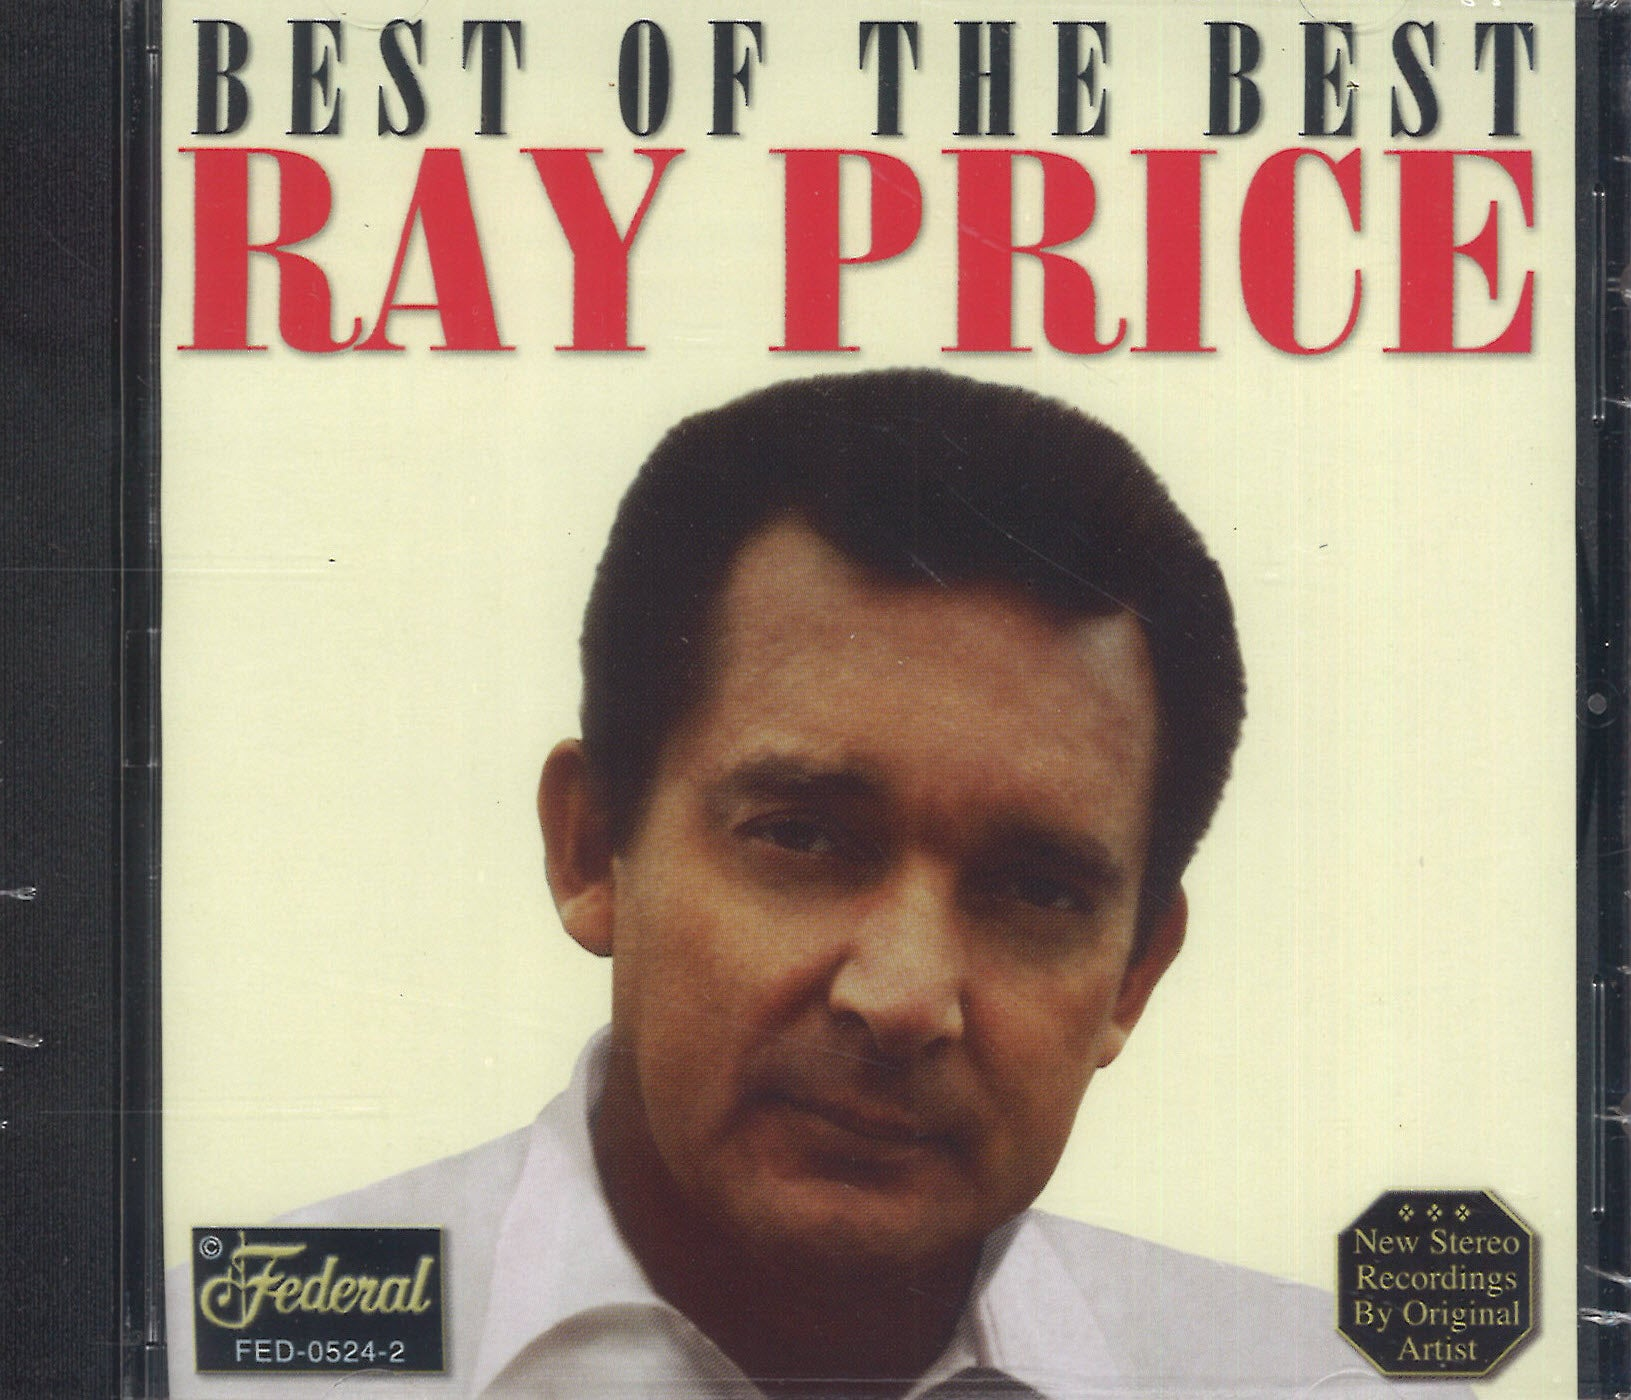 Ray Price Best Of The Best